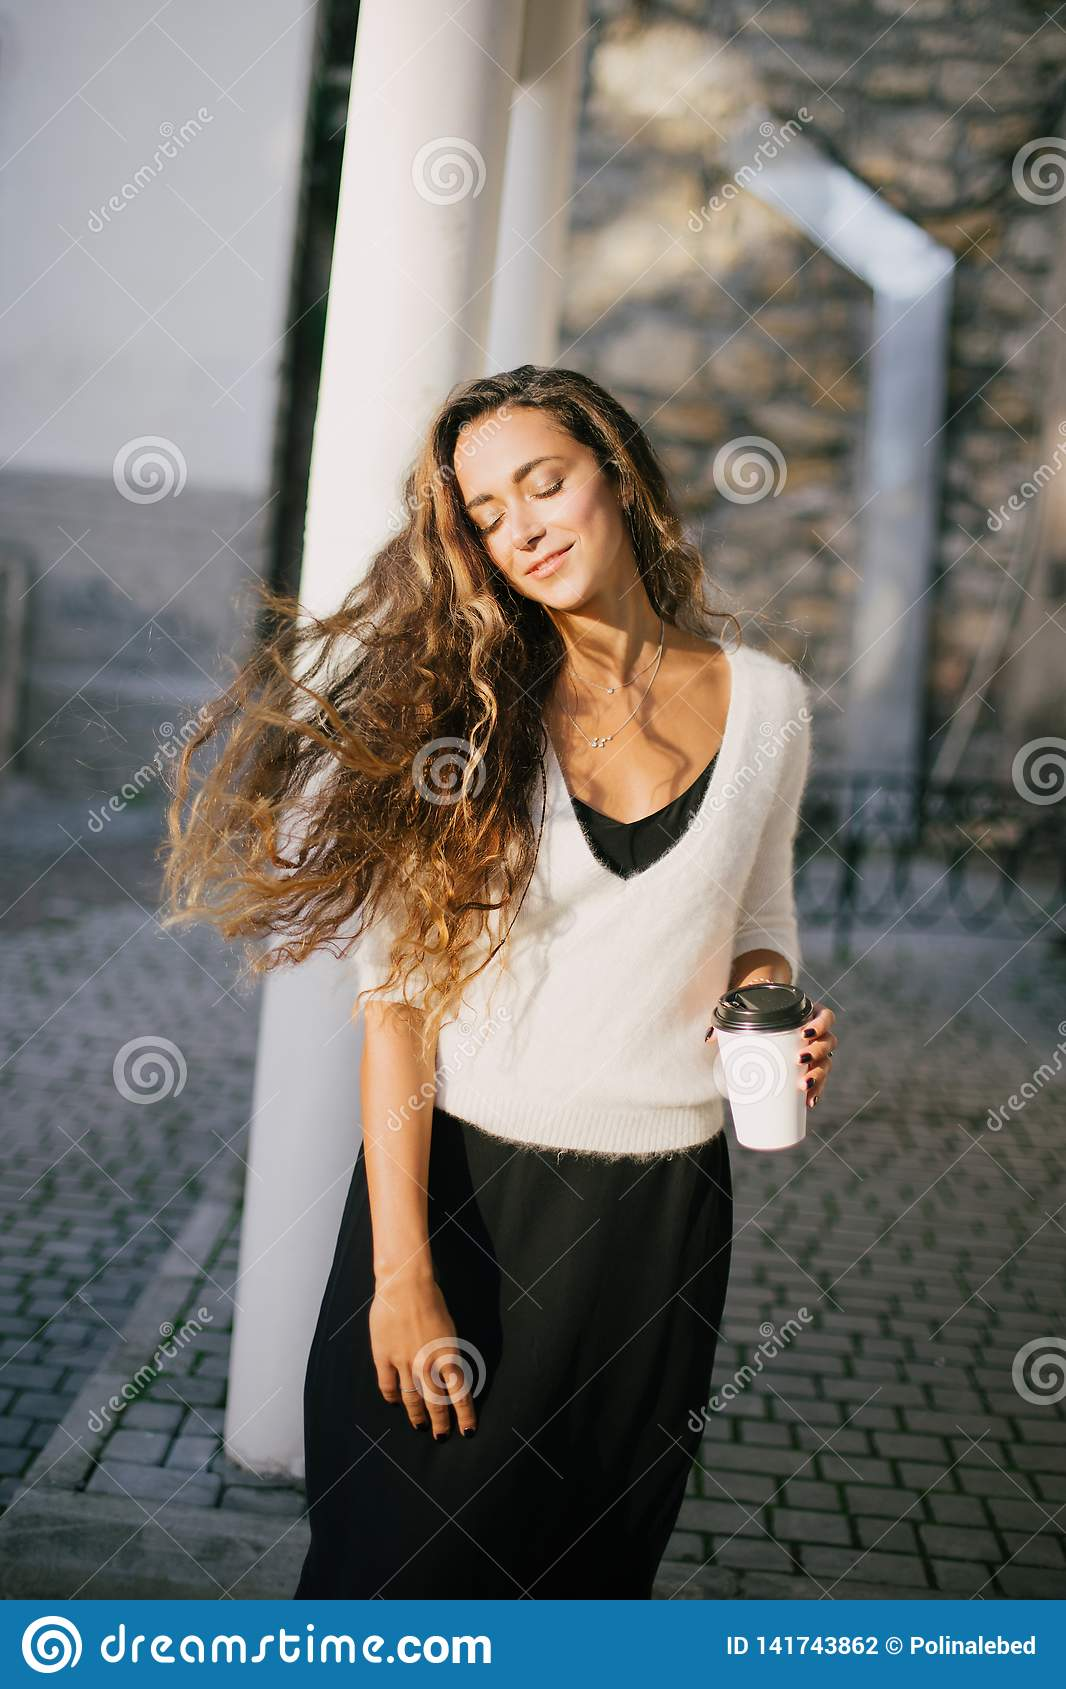 long Exhibitionist hair sexy drunk